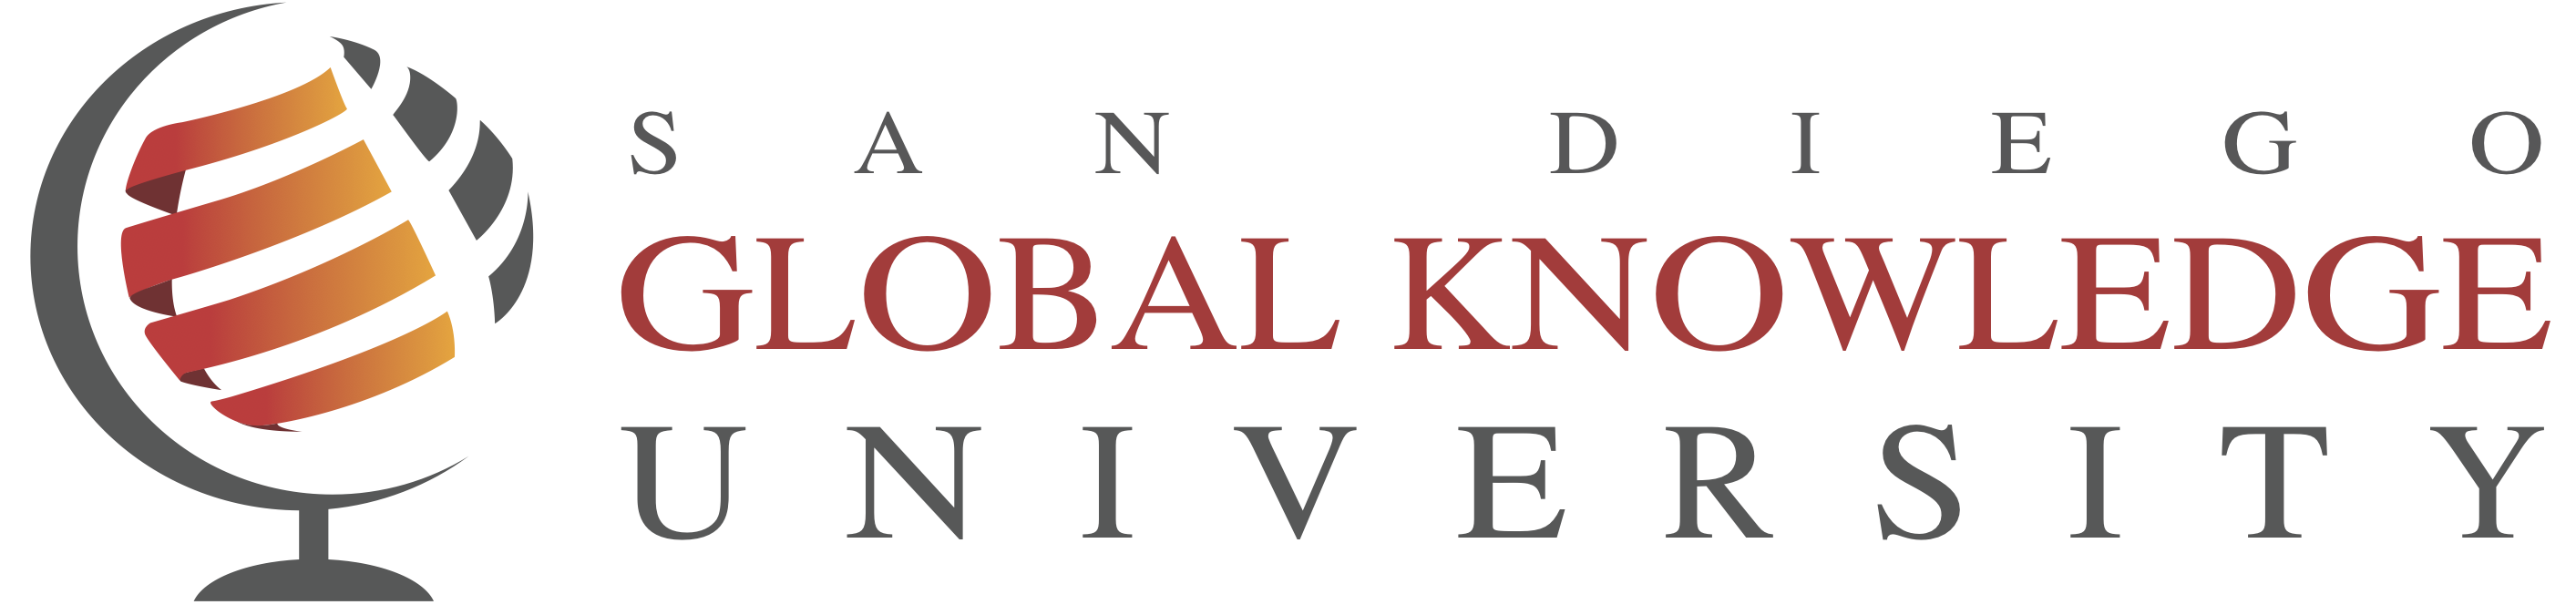 San Diego Global Knowledge University